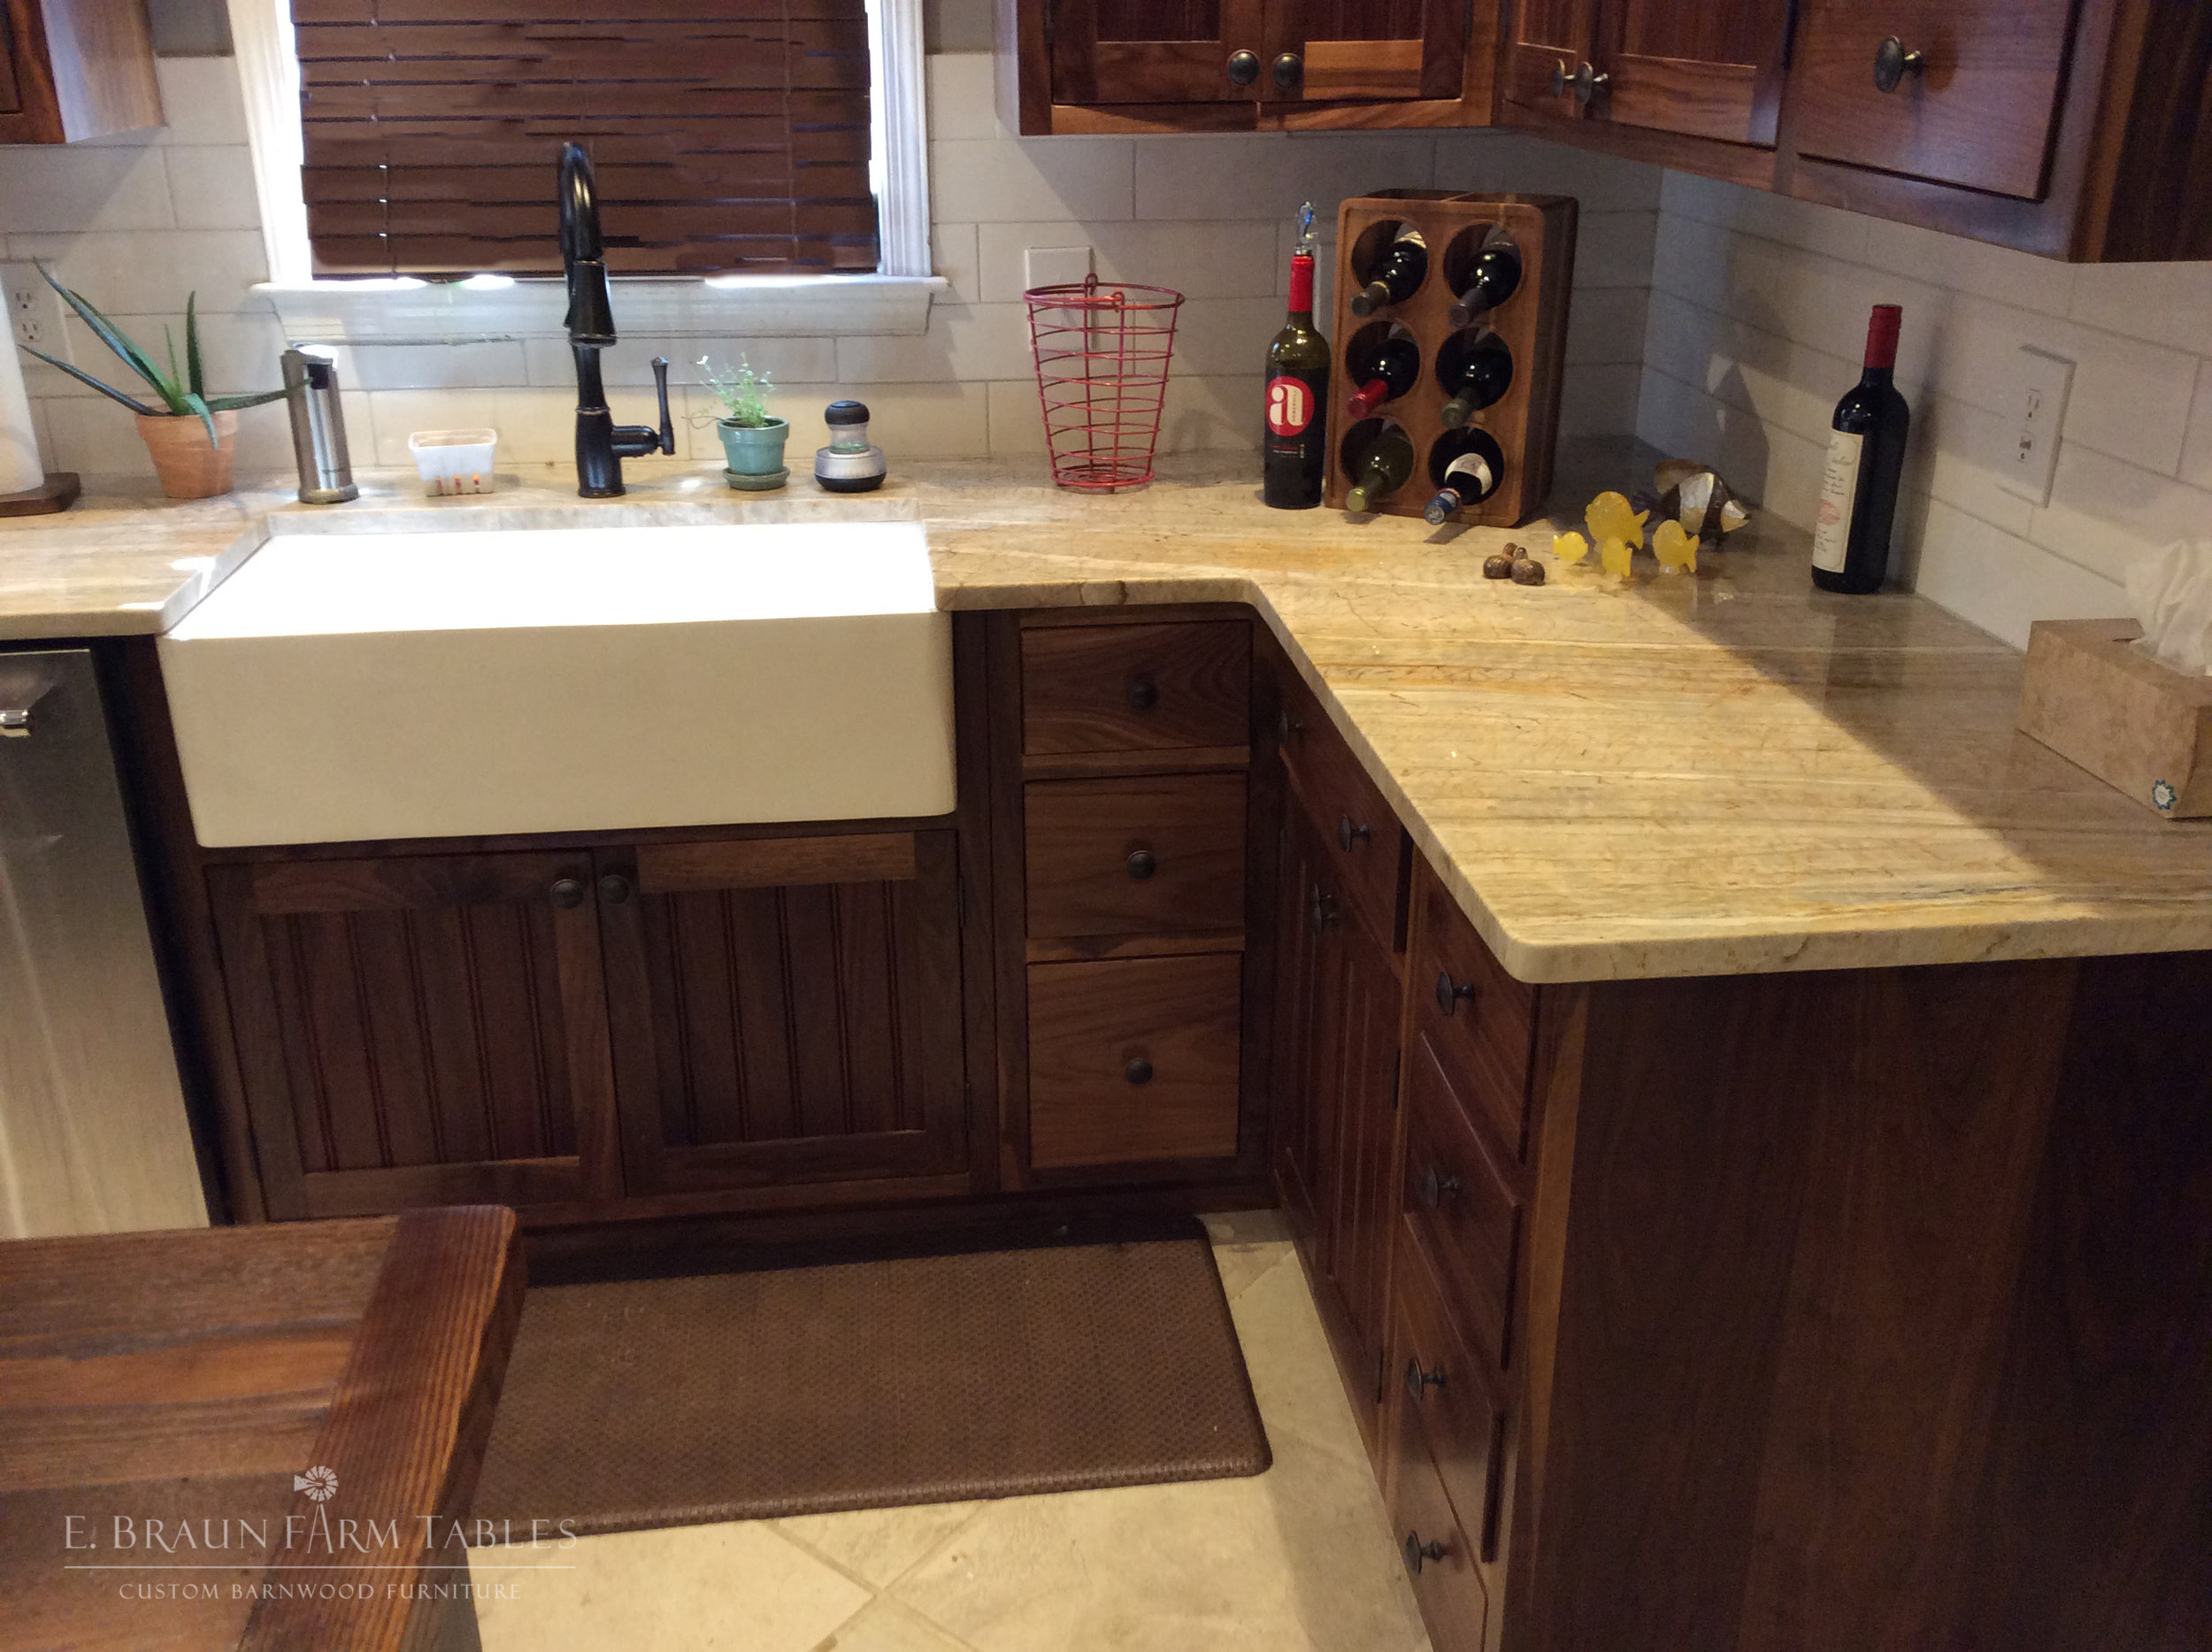 Braun kitchen base cabs sink edit.jpg